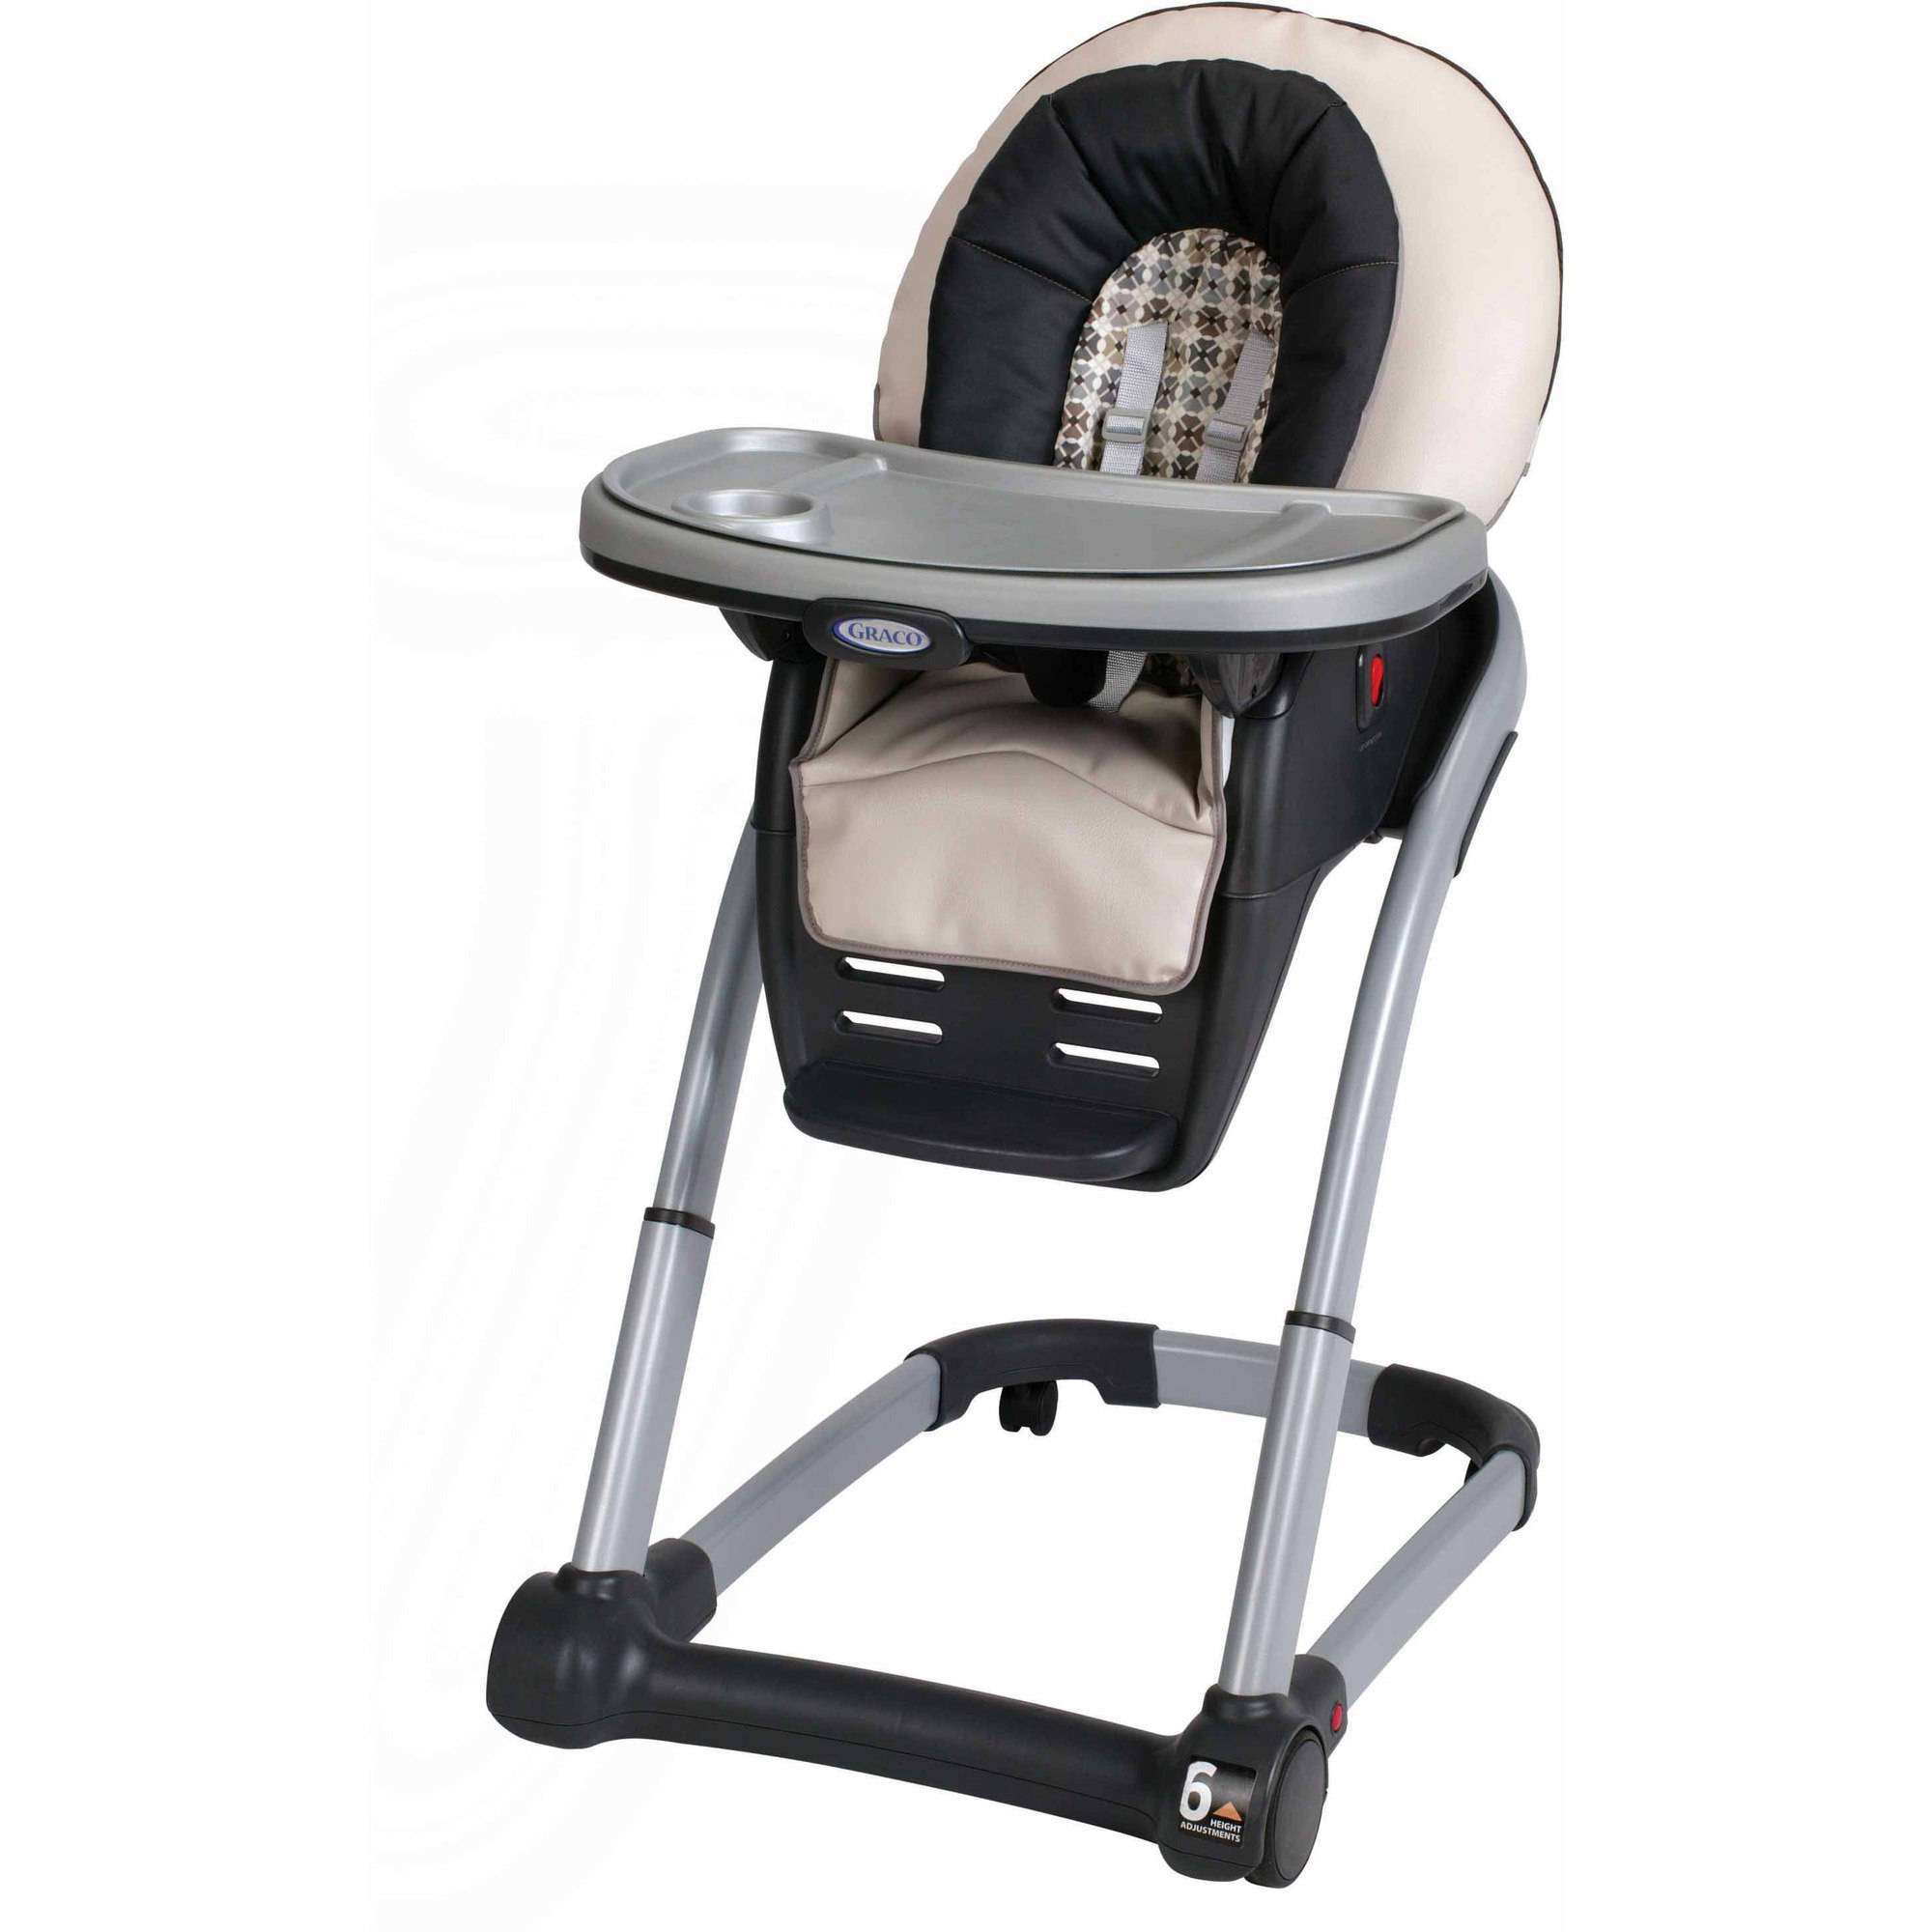 Graco Blossom 4-in-1 Seating System Convertible High Chair, Vance